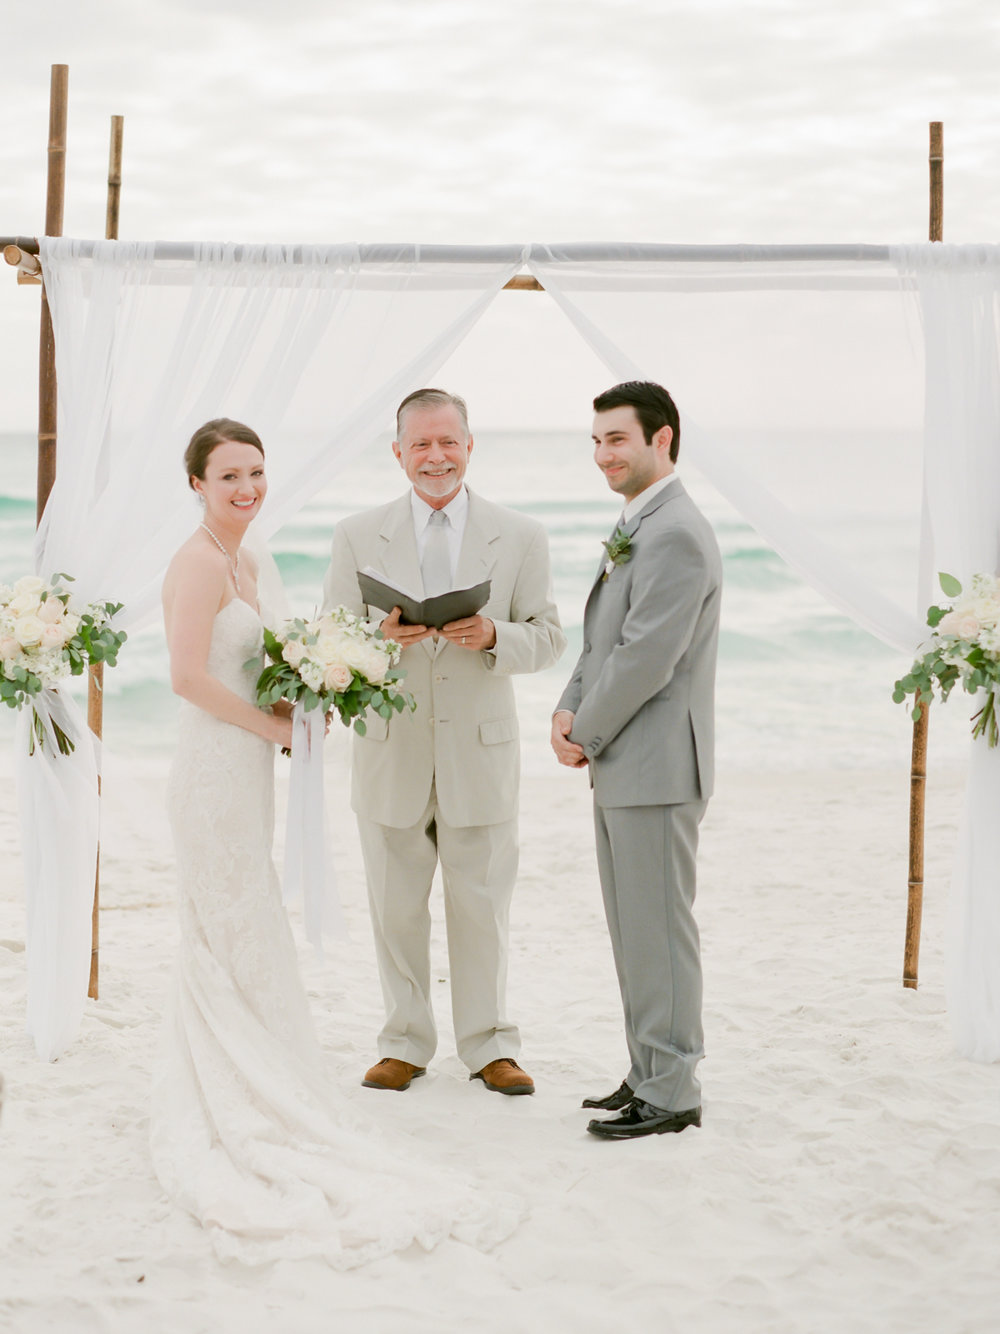 30a-florida-wedding-kayliebpoplinphotography